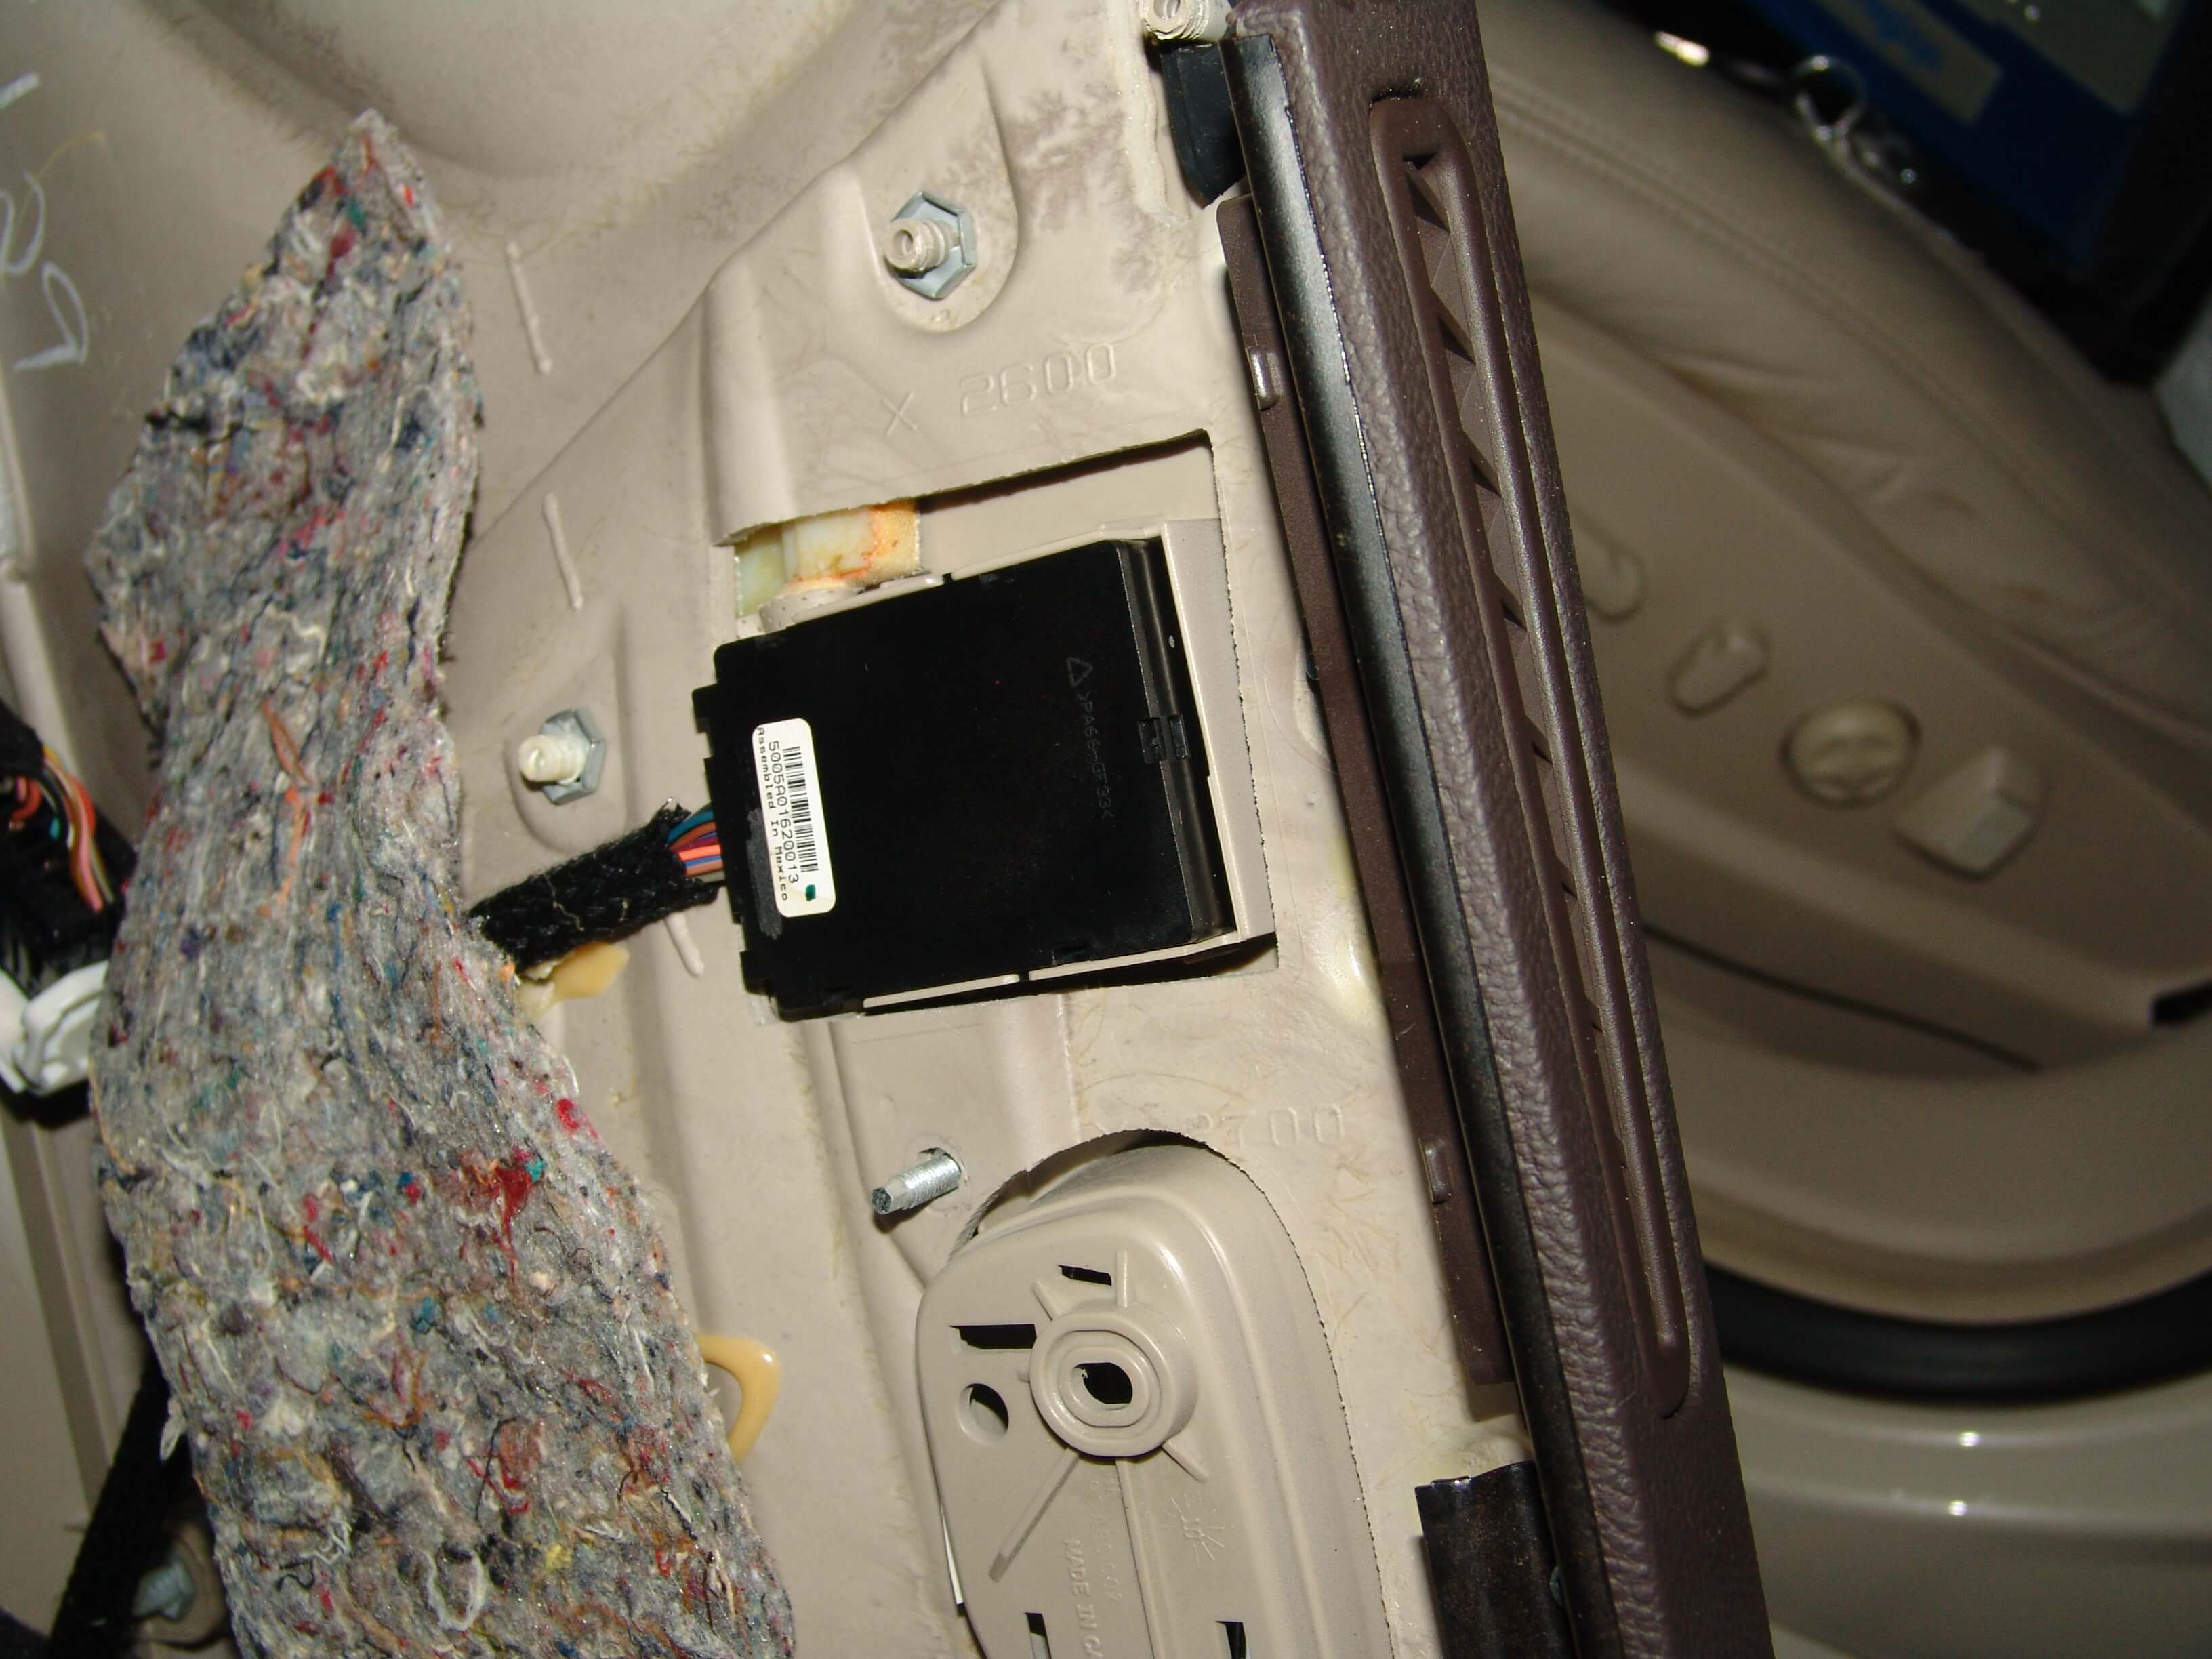 DSC09061 sparkys answers 2011 cadillac dts, battery goes dead overnight  at bakdesigns.co